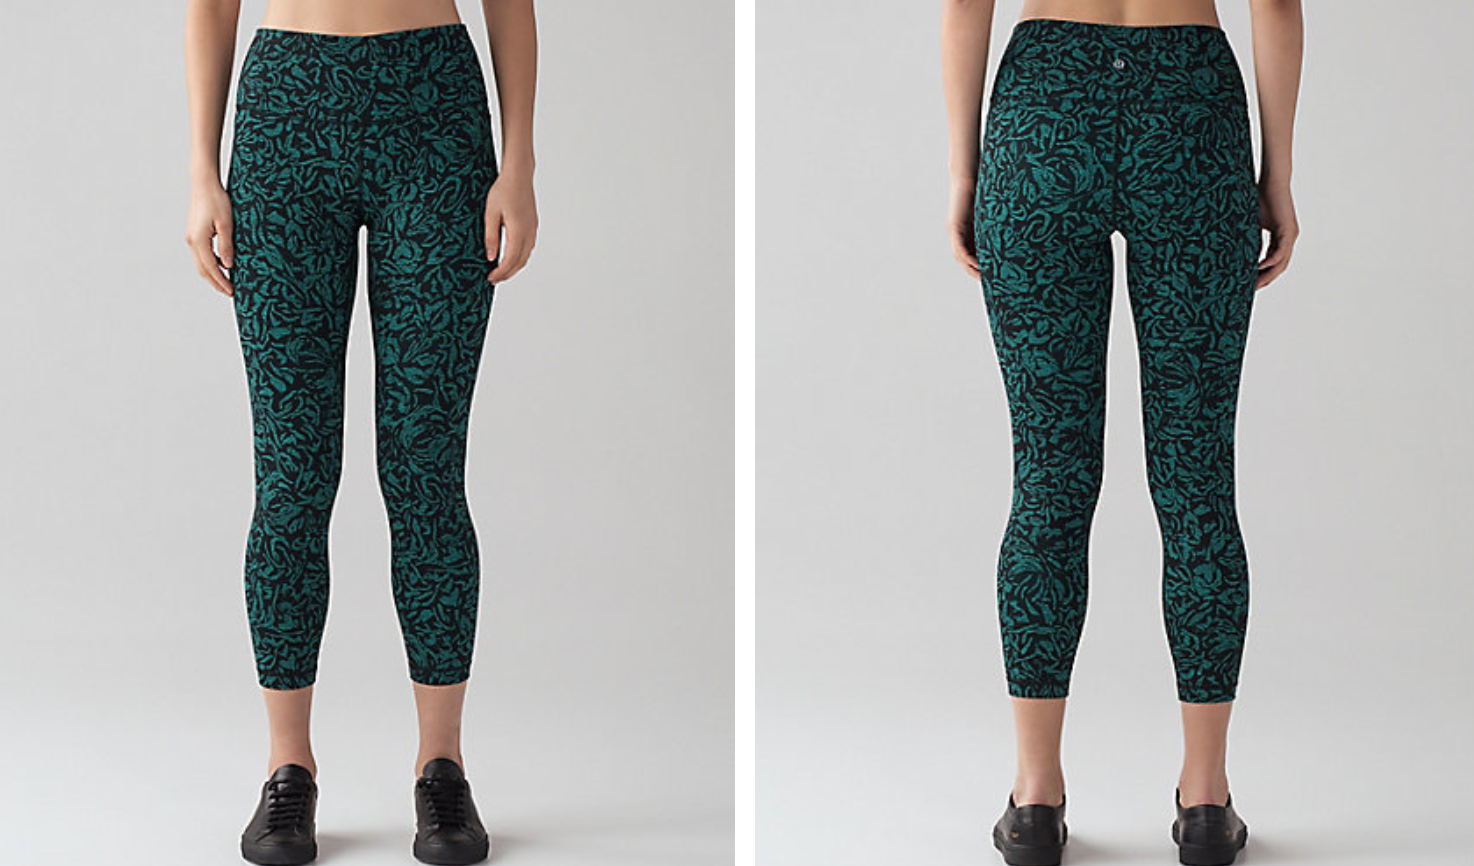 https://api.shopstyle.com/action/apiVisitRetailer?url=https%3A%2F%2Fshop.lululemon.com%2Fp%2Fwomen-78-pants%2FWunder-Under-78-Tight-Hi-Rise%2F_%2Fprod8470006%3Frcnt%3D4%26N%3D1z13ziiZ7z5%26cnt%3D65%26color%3DLW5APVS_029035&site=www.shopstyle.ca&pid=uid6784-25288972-7